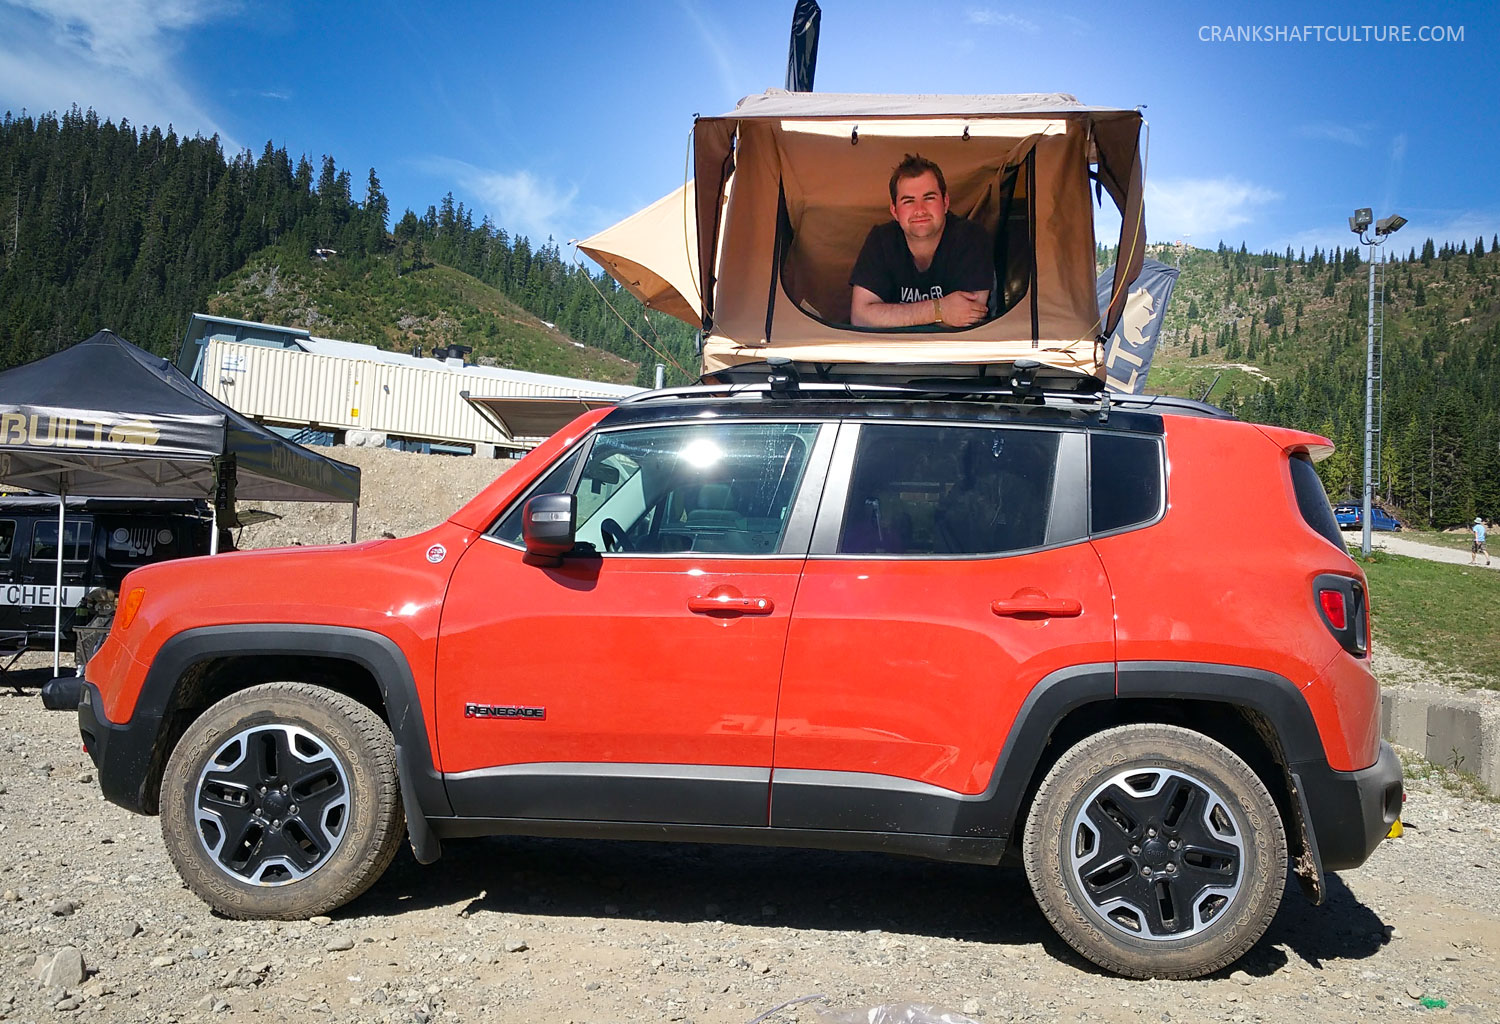 Jeep Renegade Rooftop Tent & Renegade-Rooftop-Tent - CRANKSHAFT CULTURE